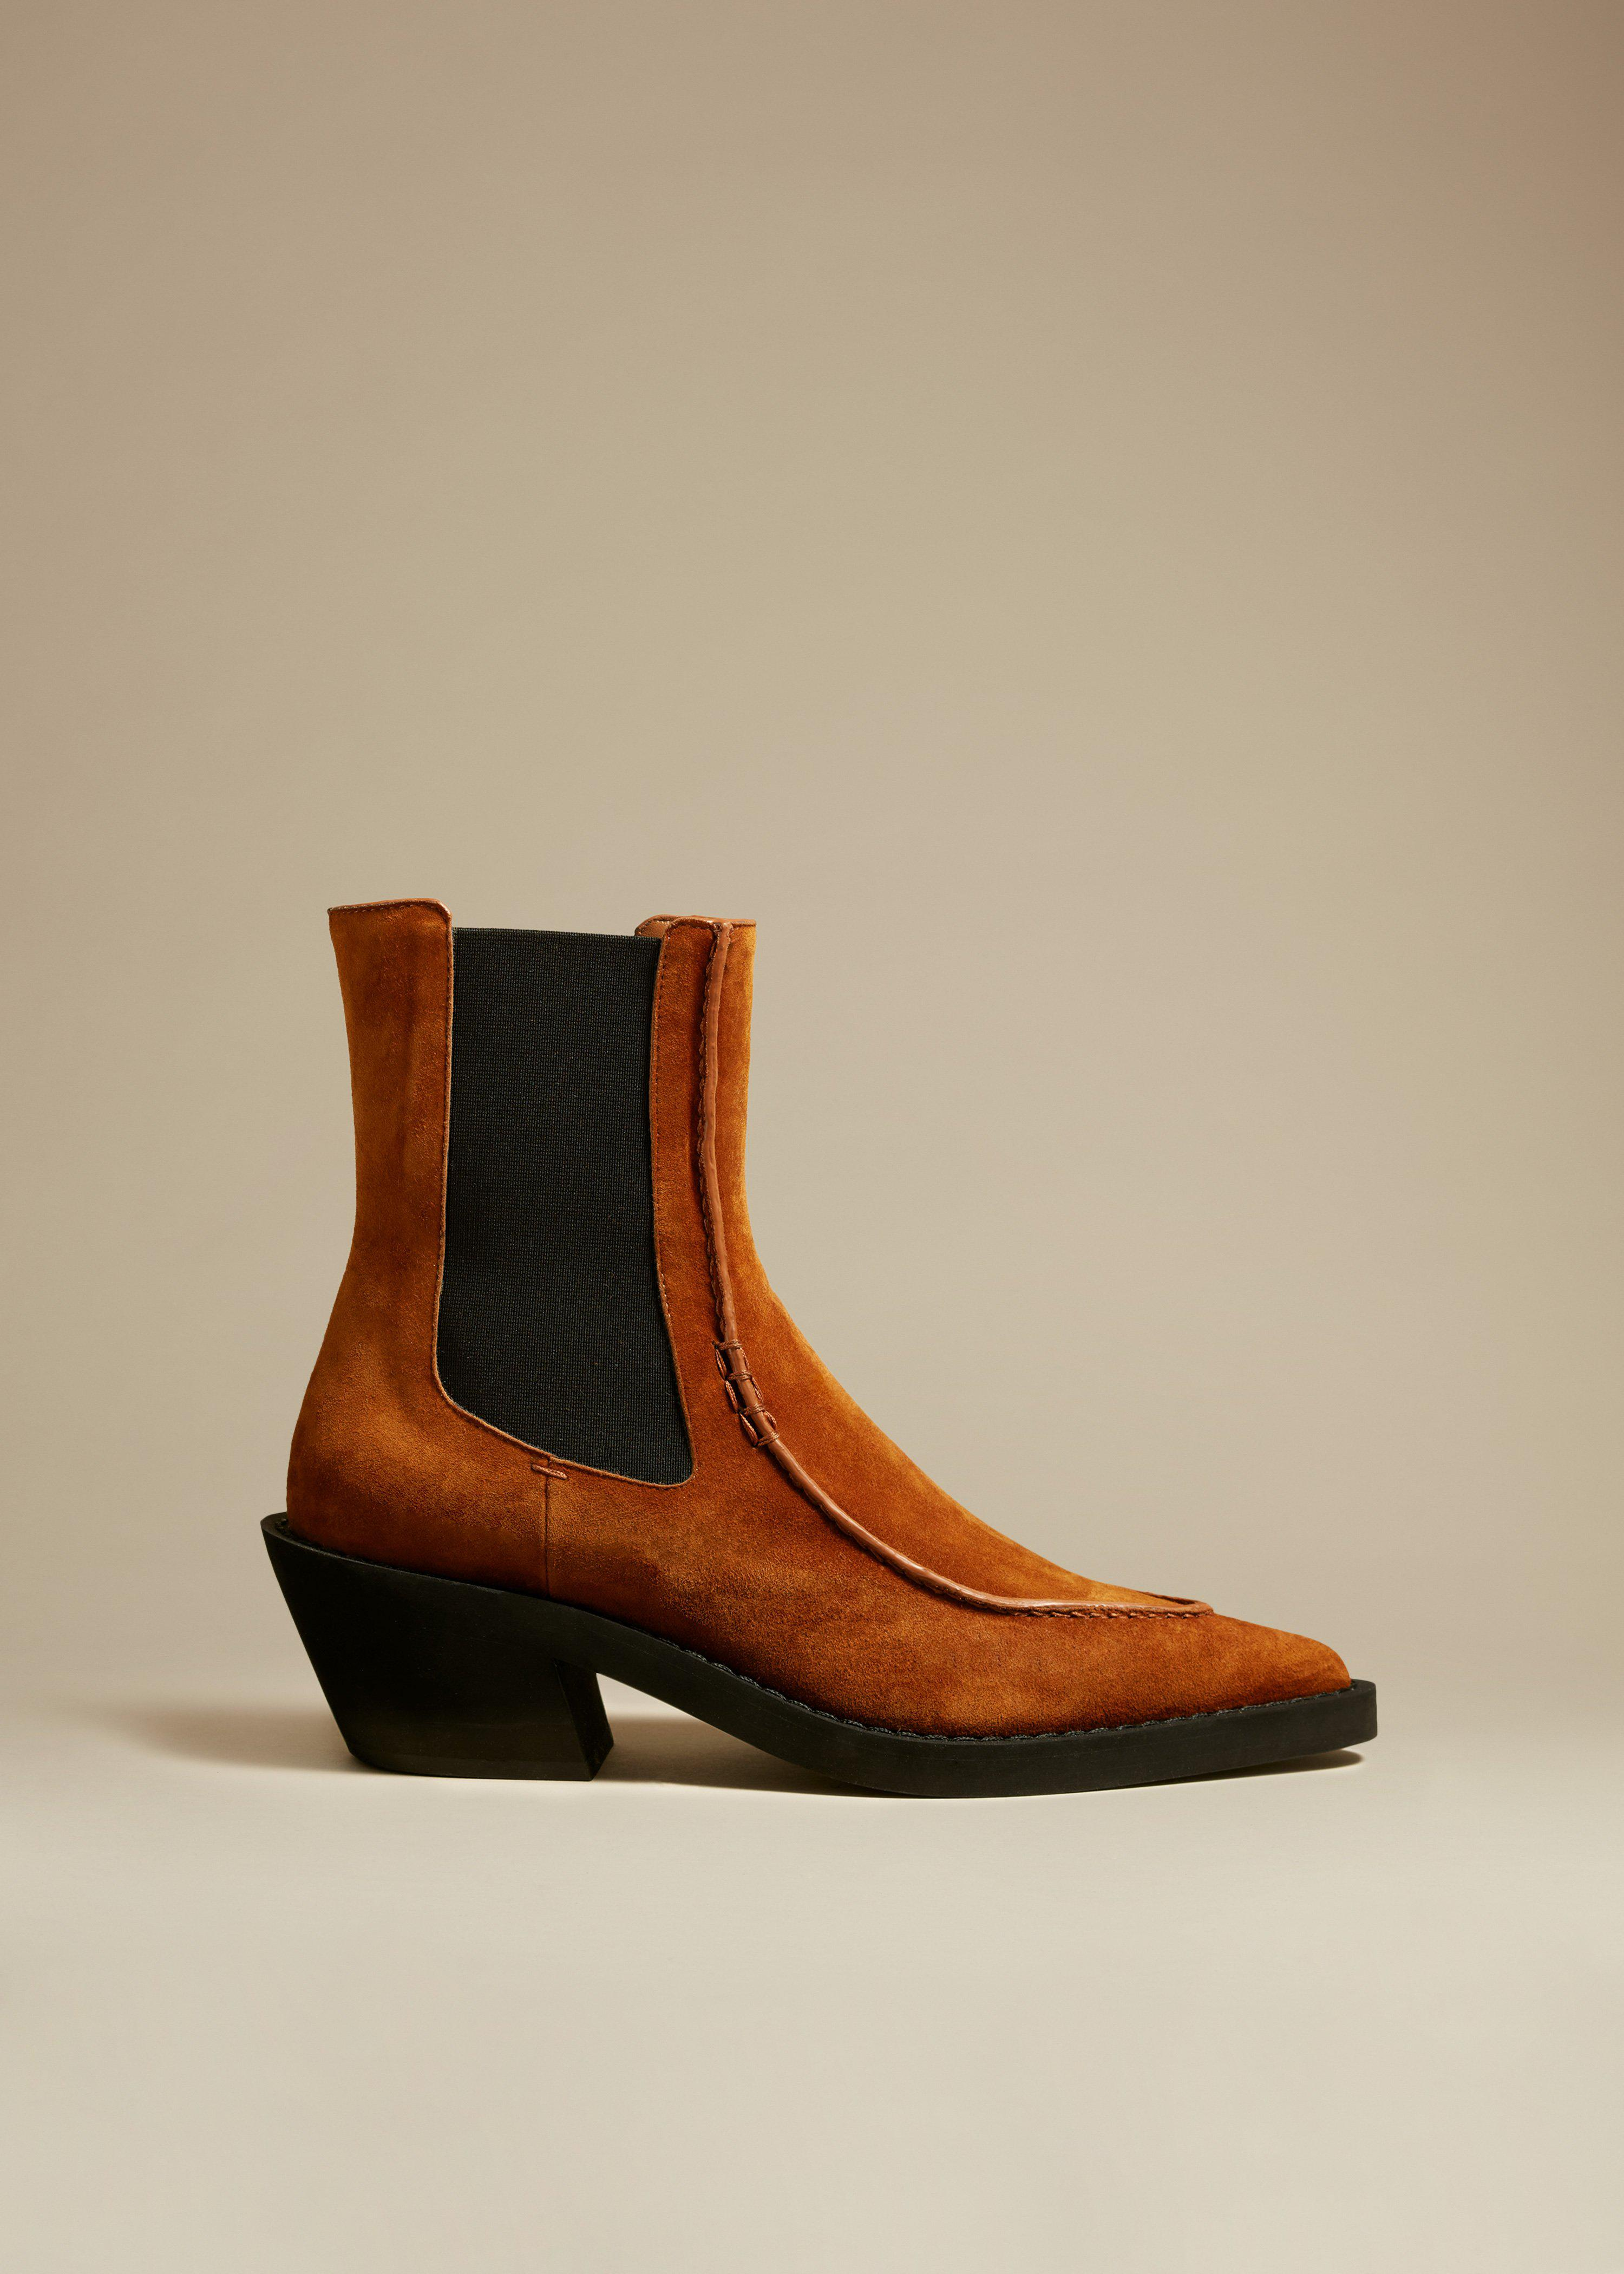 The Charleston Ankle Boot in Caramel Suede